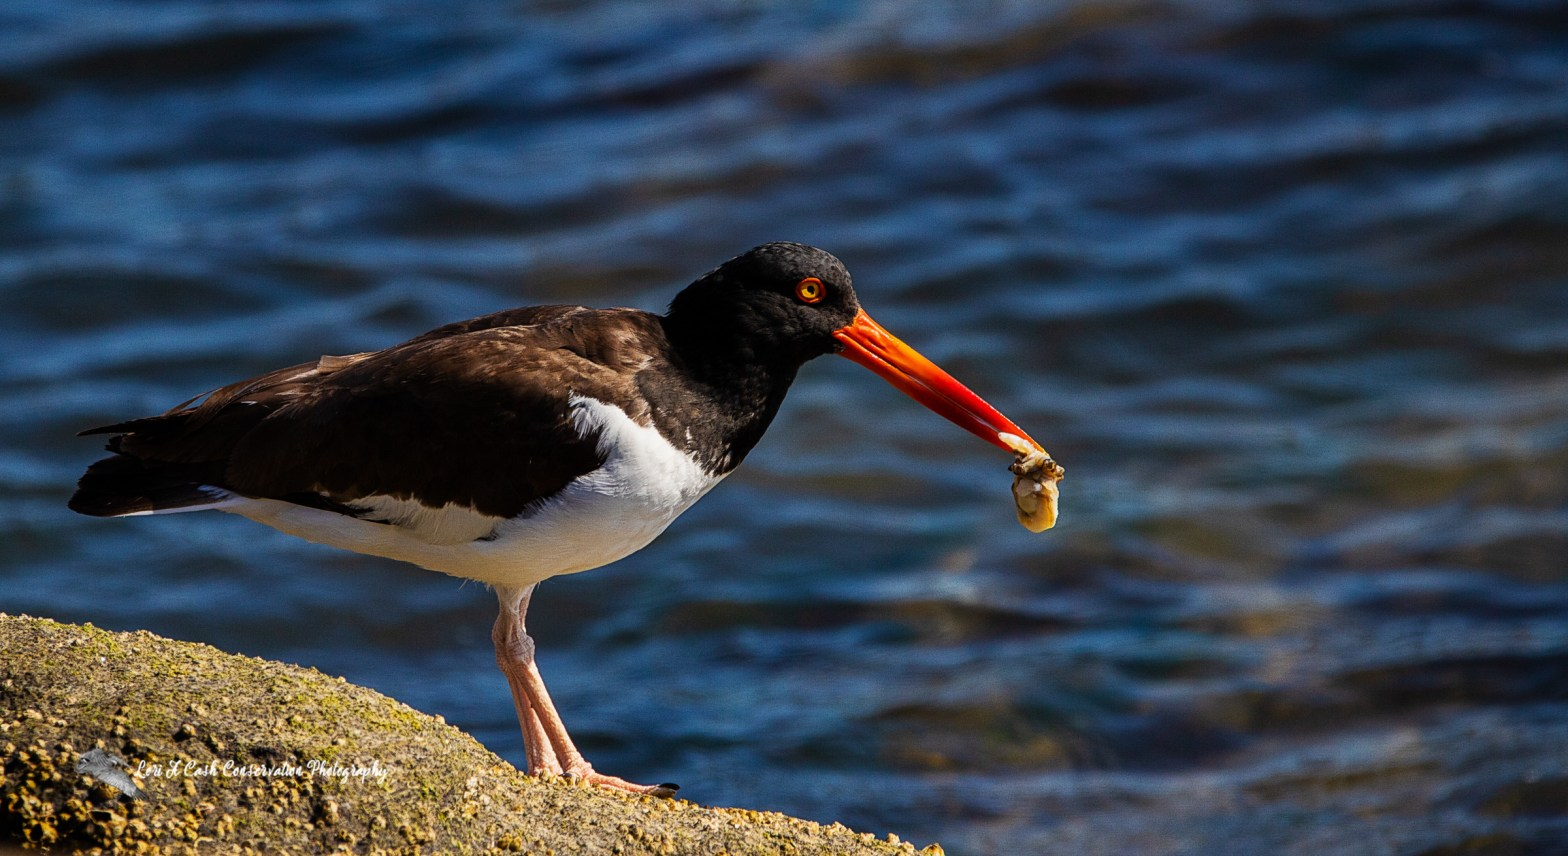 On a late spring morning, an American oystercatcher was foraging along the rocky shoreline searching for food as the tide was coming in. I observed and photographed this American oystercatcher as it was stabbing his brightly colored orange red bill into the water at the edge of the rocks. It would consistently find oysters just under the water's surface. Using his sharp bill, the oystercatcher would pry open the oyster shell and extract the oyster with his long bill, but instead of eating the oyster, he would grab the oyster in his bill and fly off, carrying the oyster to feed his chick that was nearby. The male oystercatcher would repeatedly go searching and finding oysters and bring them back to feed his chick while the female American oystercatcher watched over their one chick.